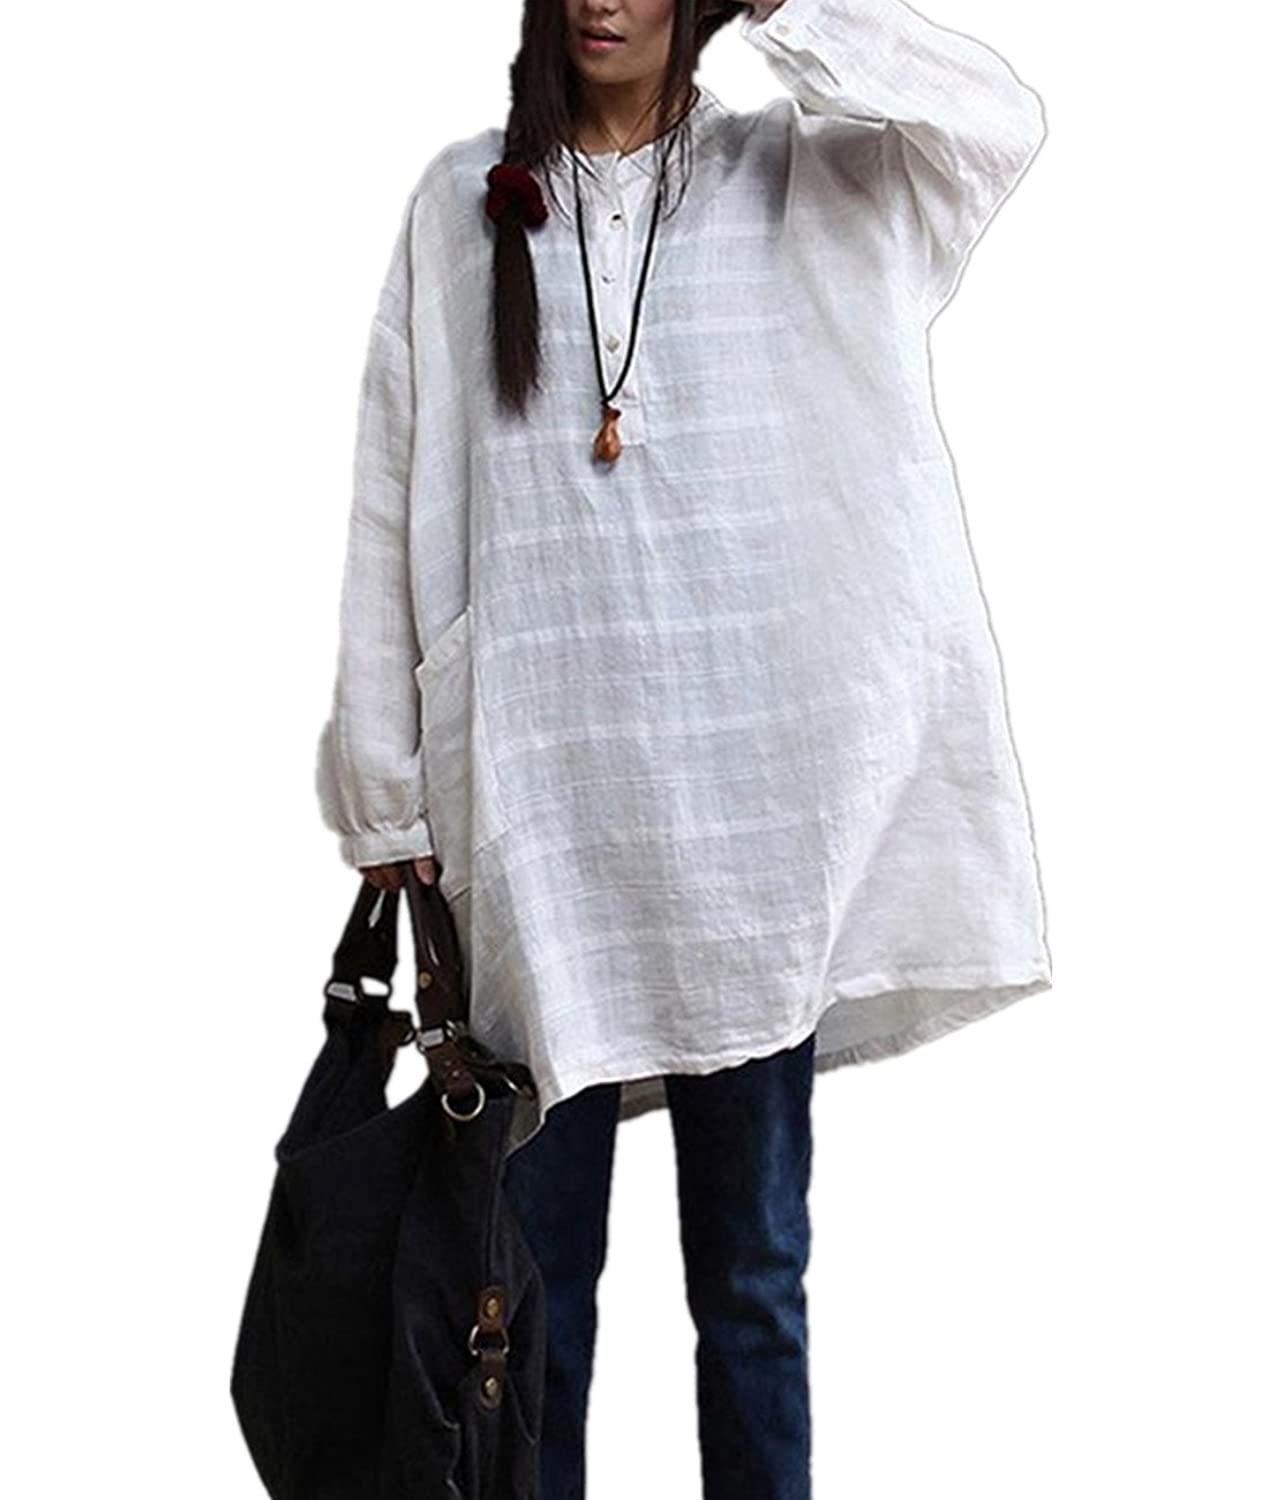 fdaa57f9ab5 YESNO AB0 Women Casual White Tops Blouse 100% Linen Loose Fit Button-Up  Stand Collar Roll-up Long Sleeve Big Front Pockets